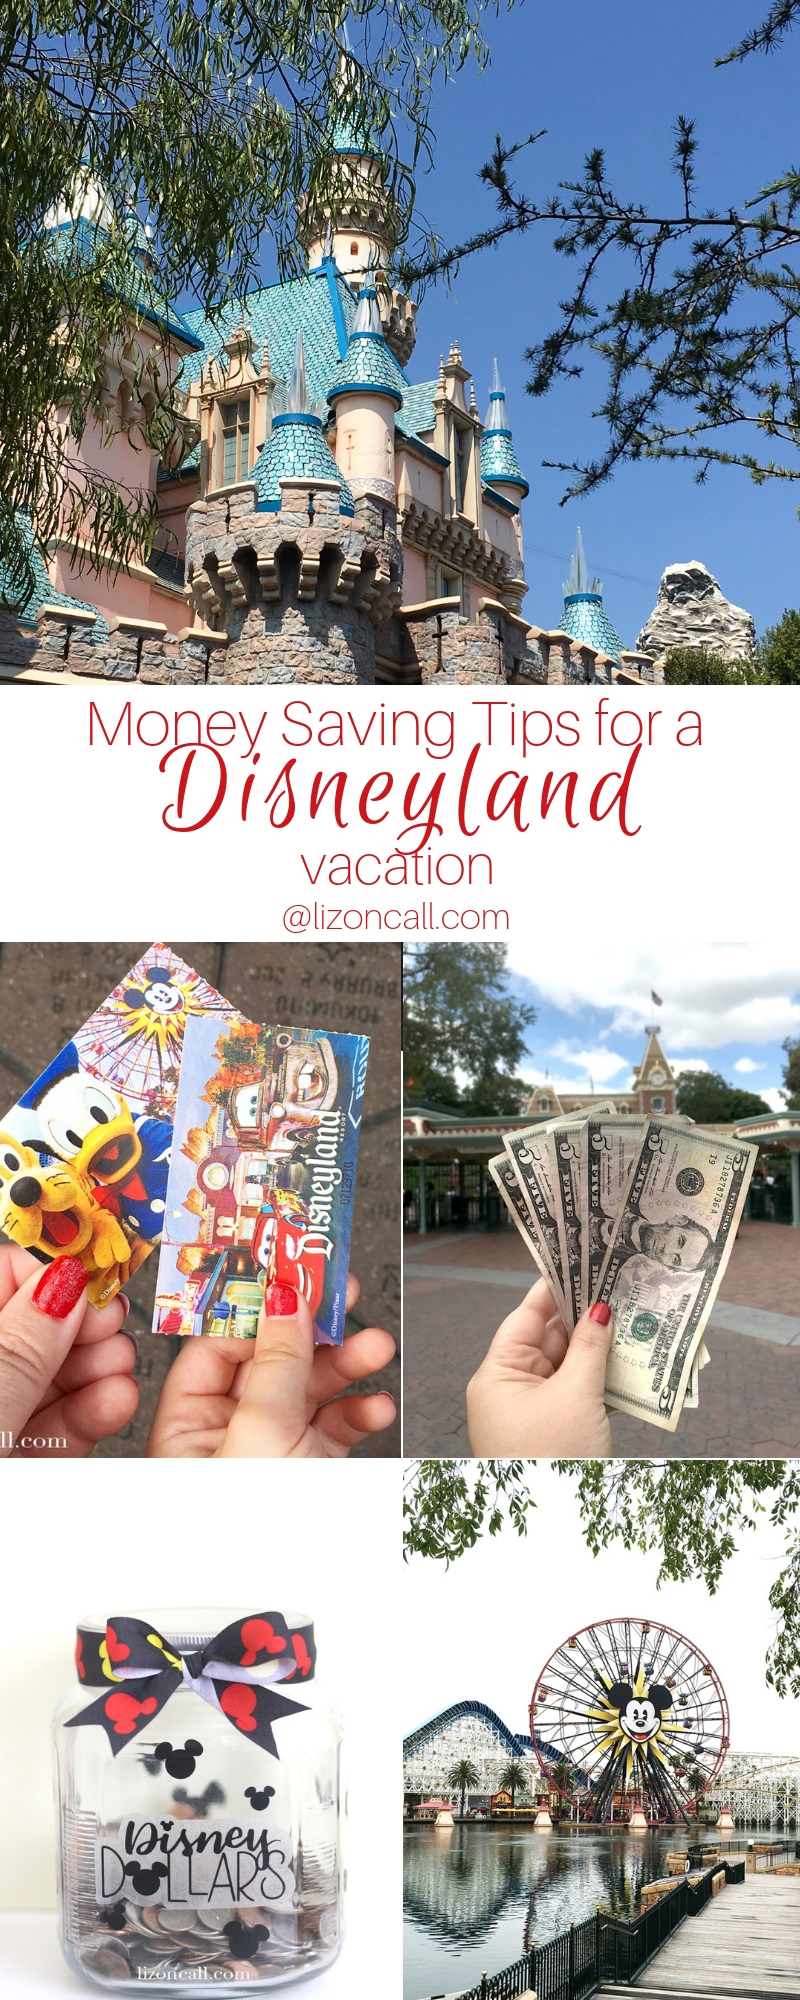 Don't let the cost keep you away. Check out these Money Saving Tips For A Disneyland Vacation and start planning your next family vacation.